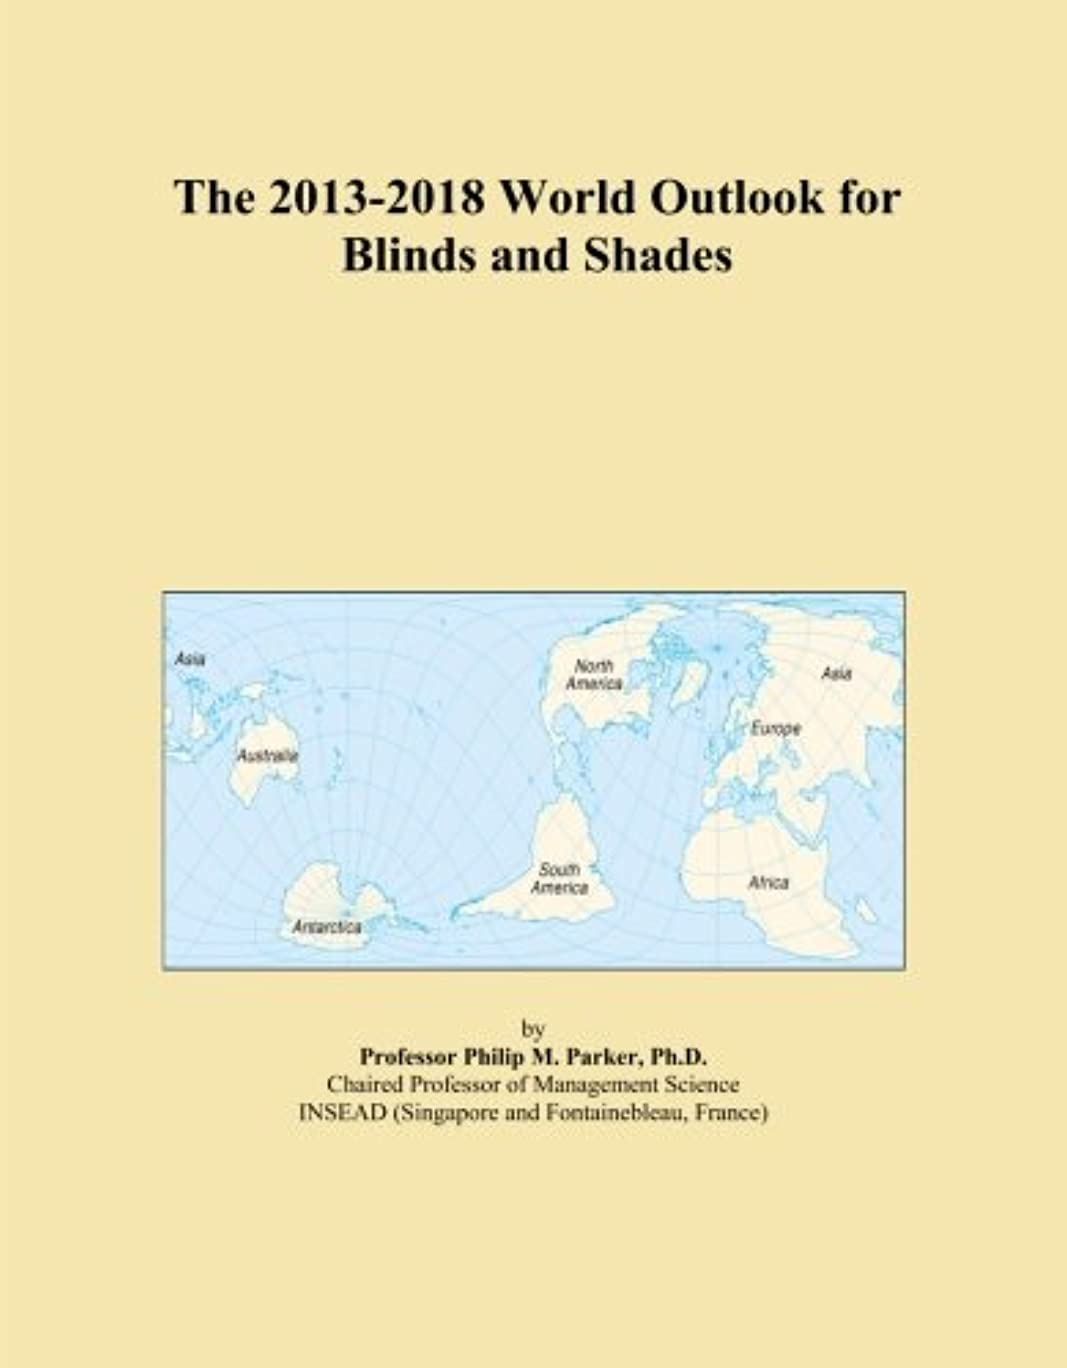 The 2013-2018 World Outlook for Blinds and Shades